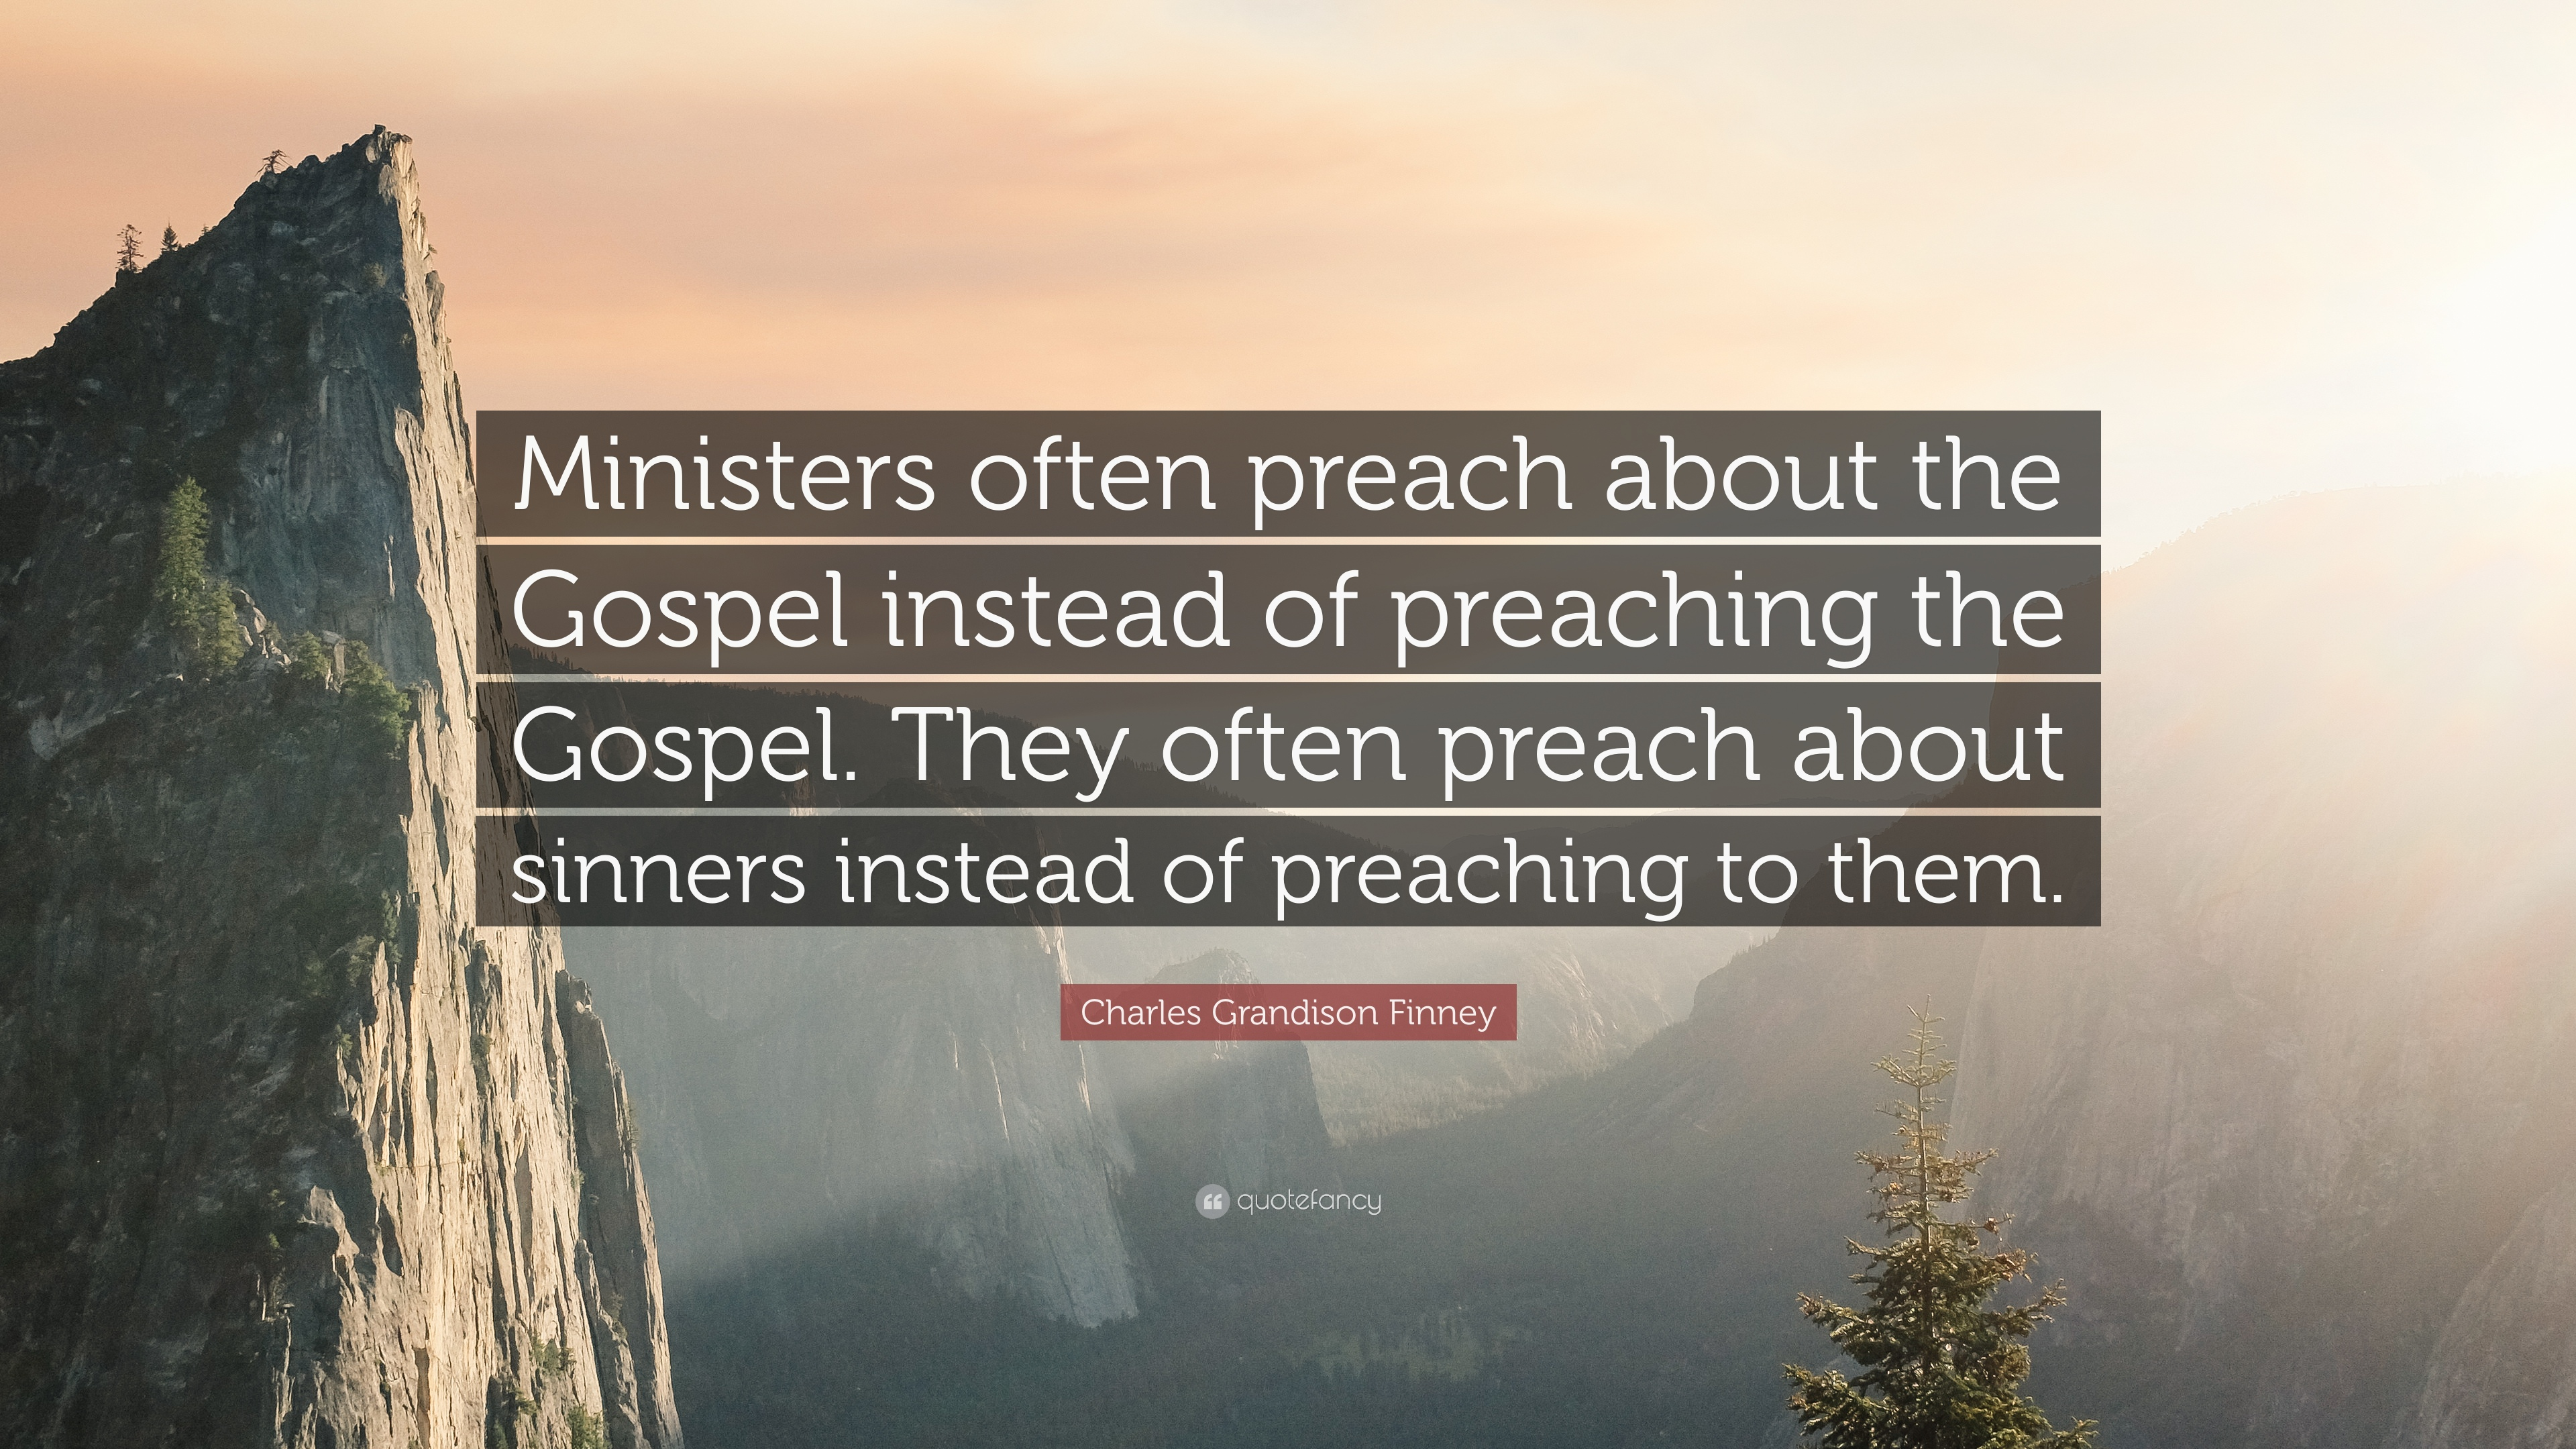 charles grandison finney quote ministers often preach about the